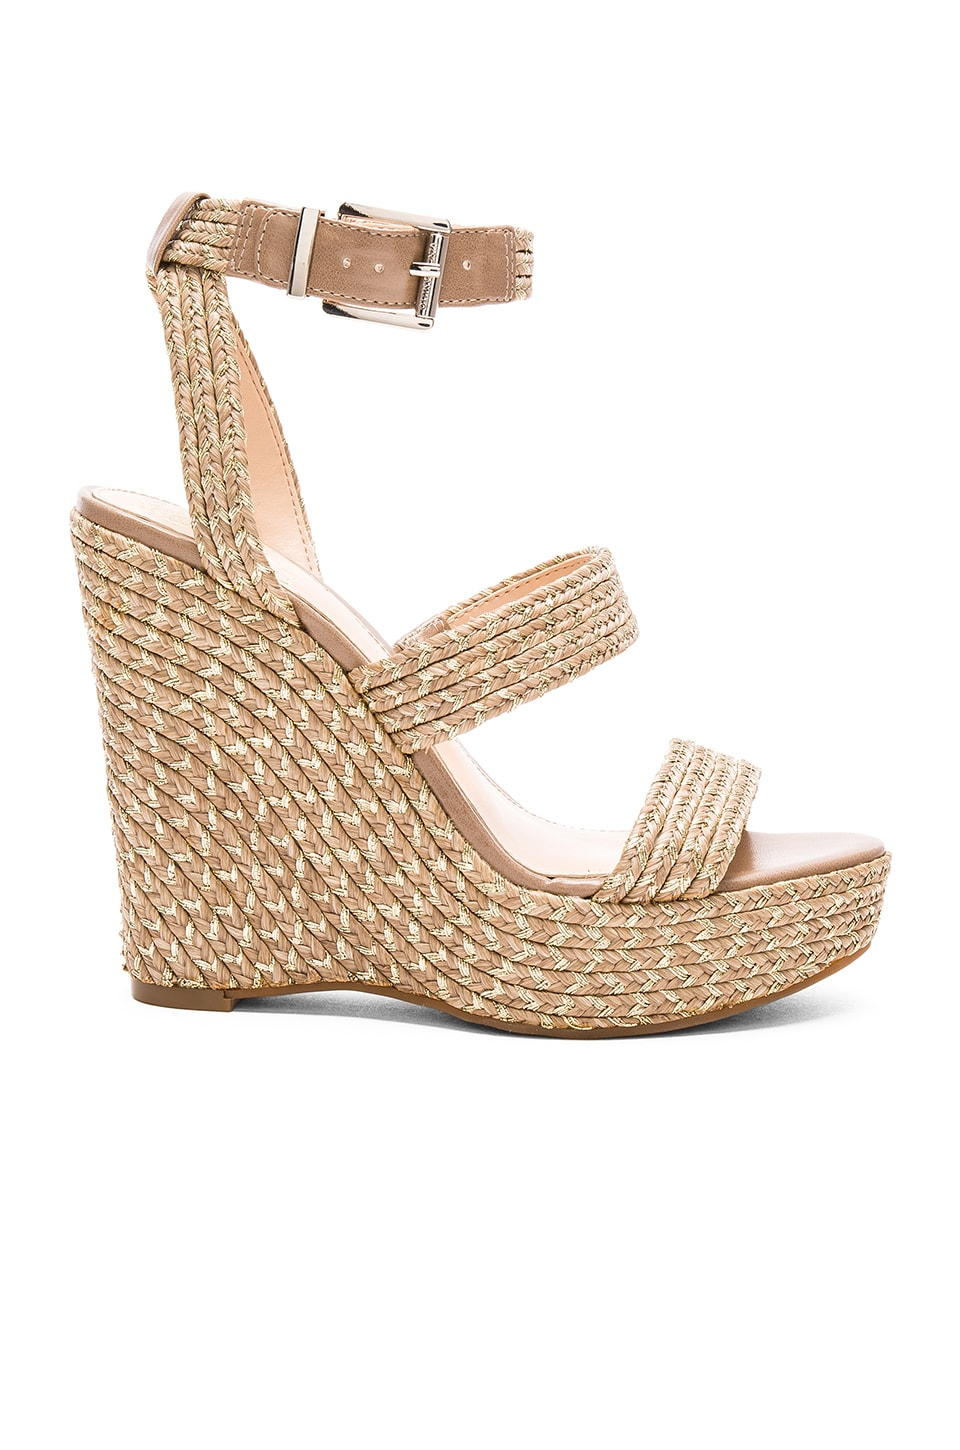 Vince Camuto Melisha Wedge in Nude and Gold